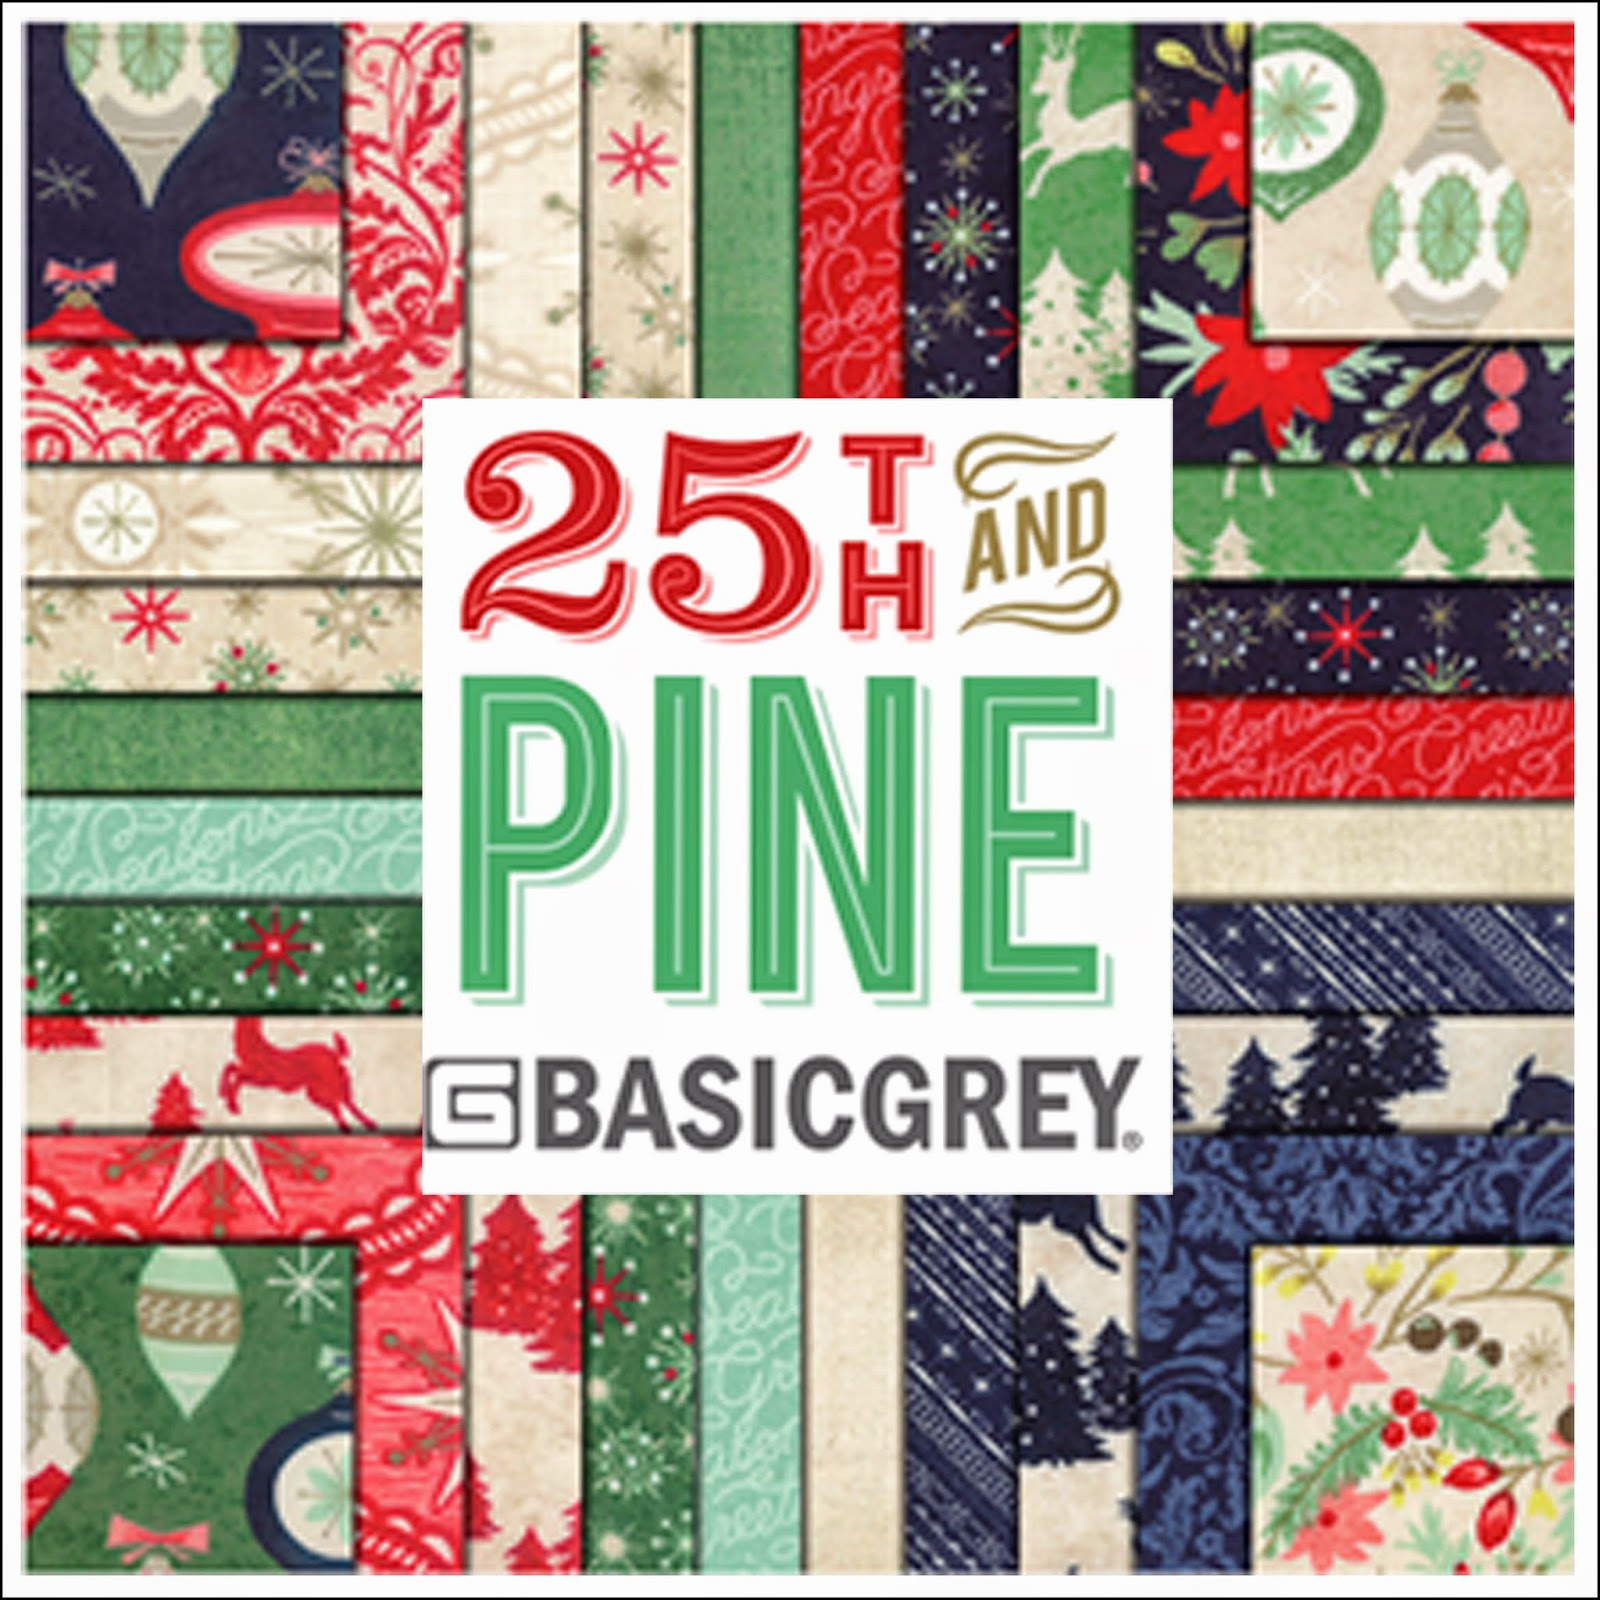 Moda 25TH AND PINE Christmas Quilt Fabric by Basic Grey Basicgrey